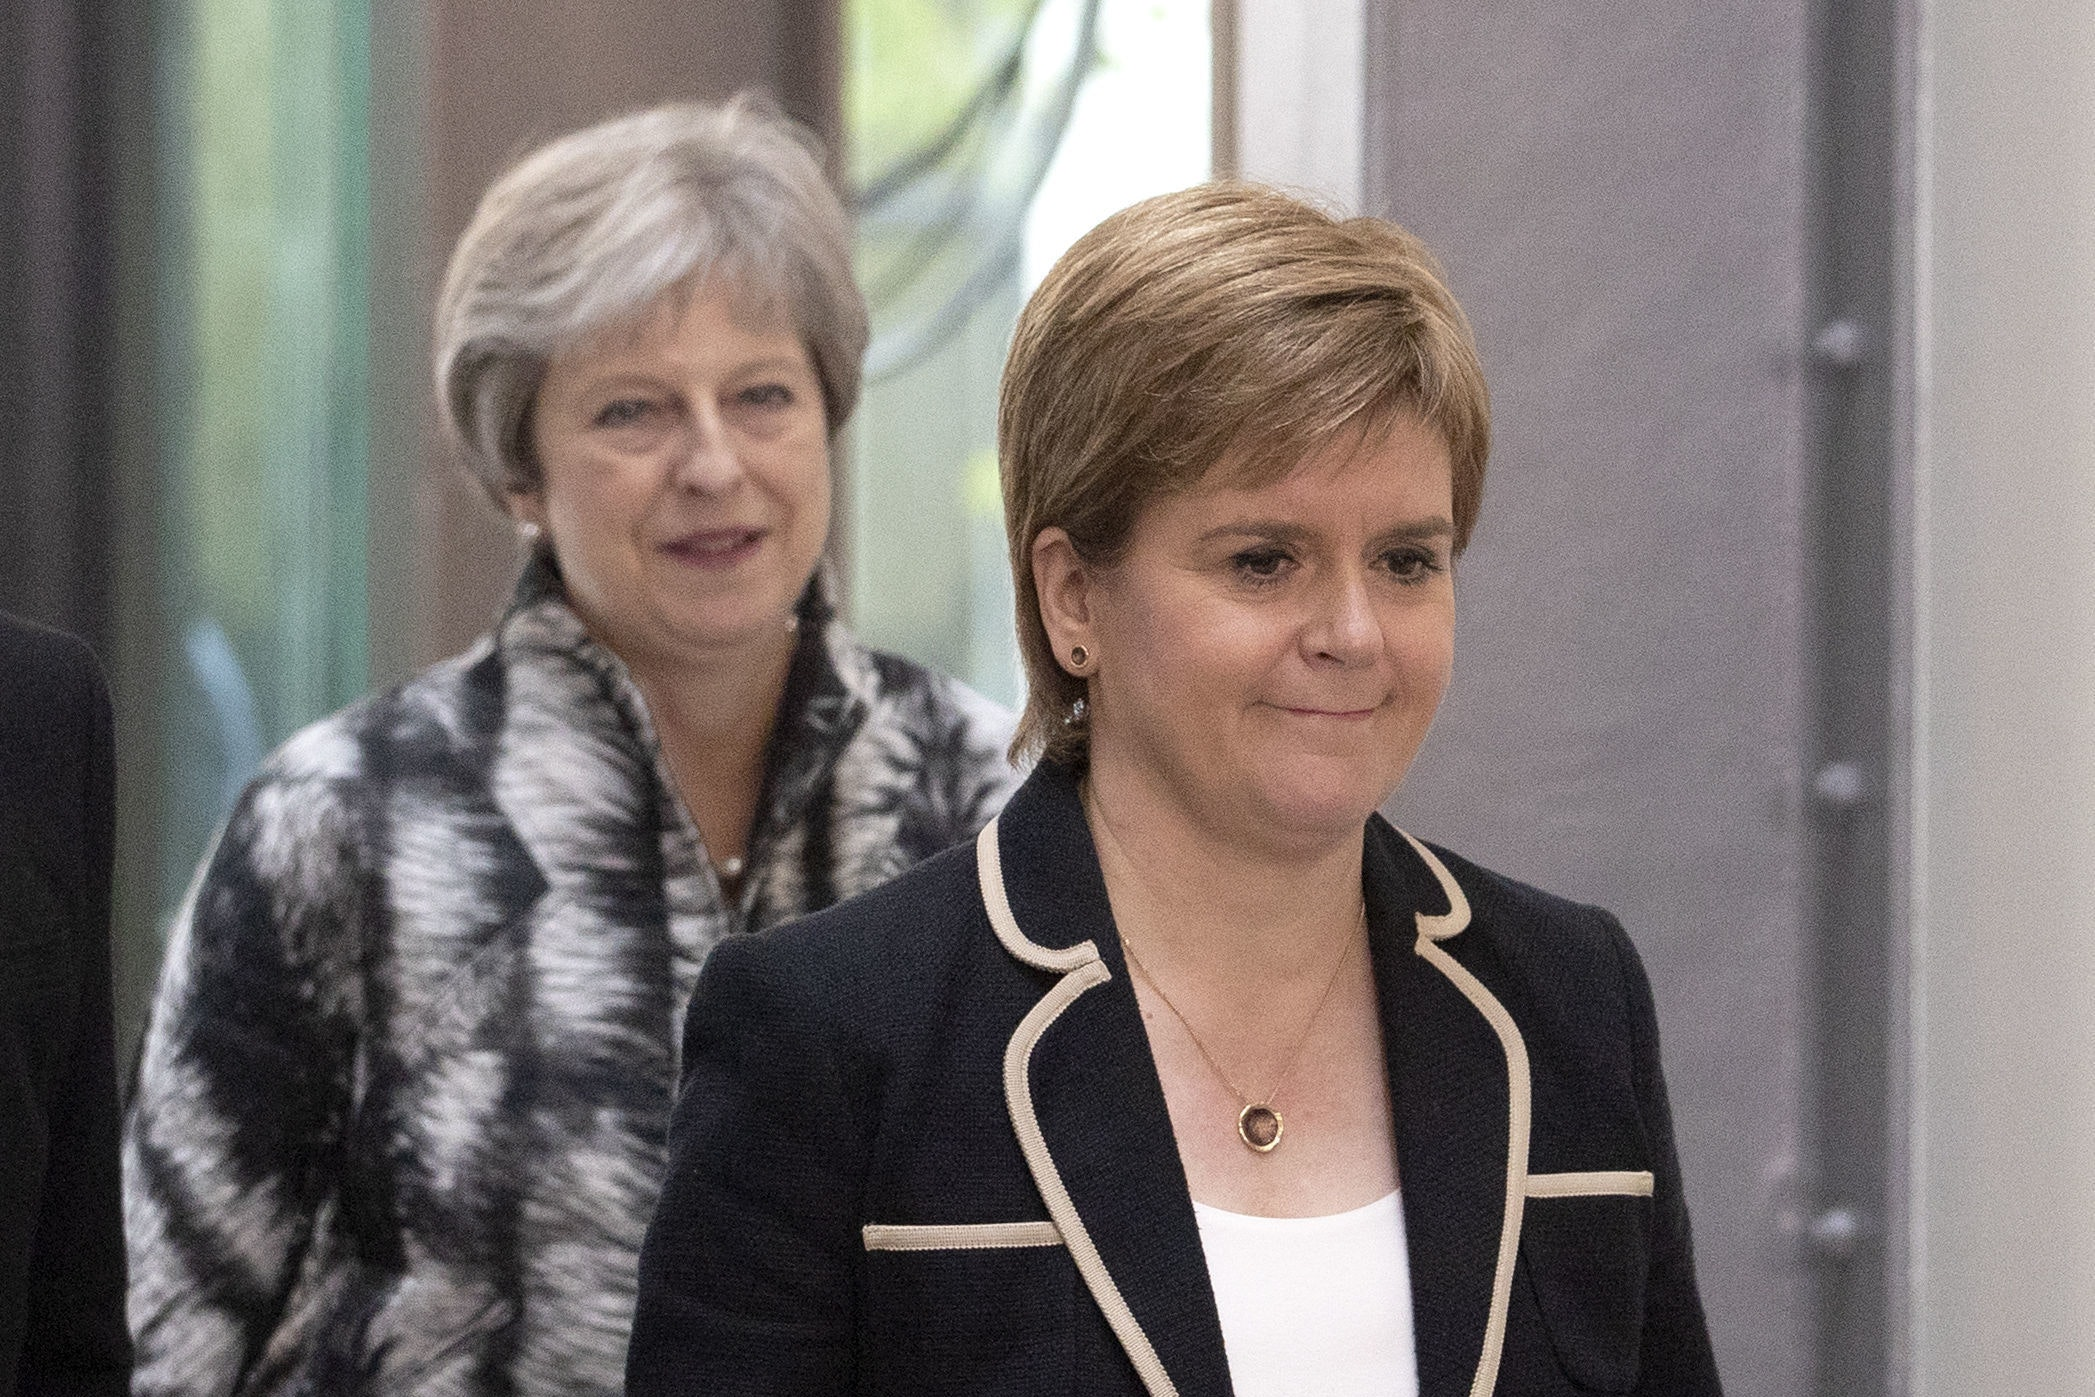 Prime Minister Theresa May and First Minister Nicola Sturgeon